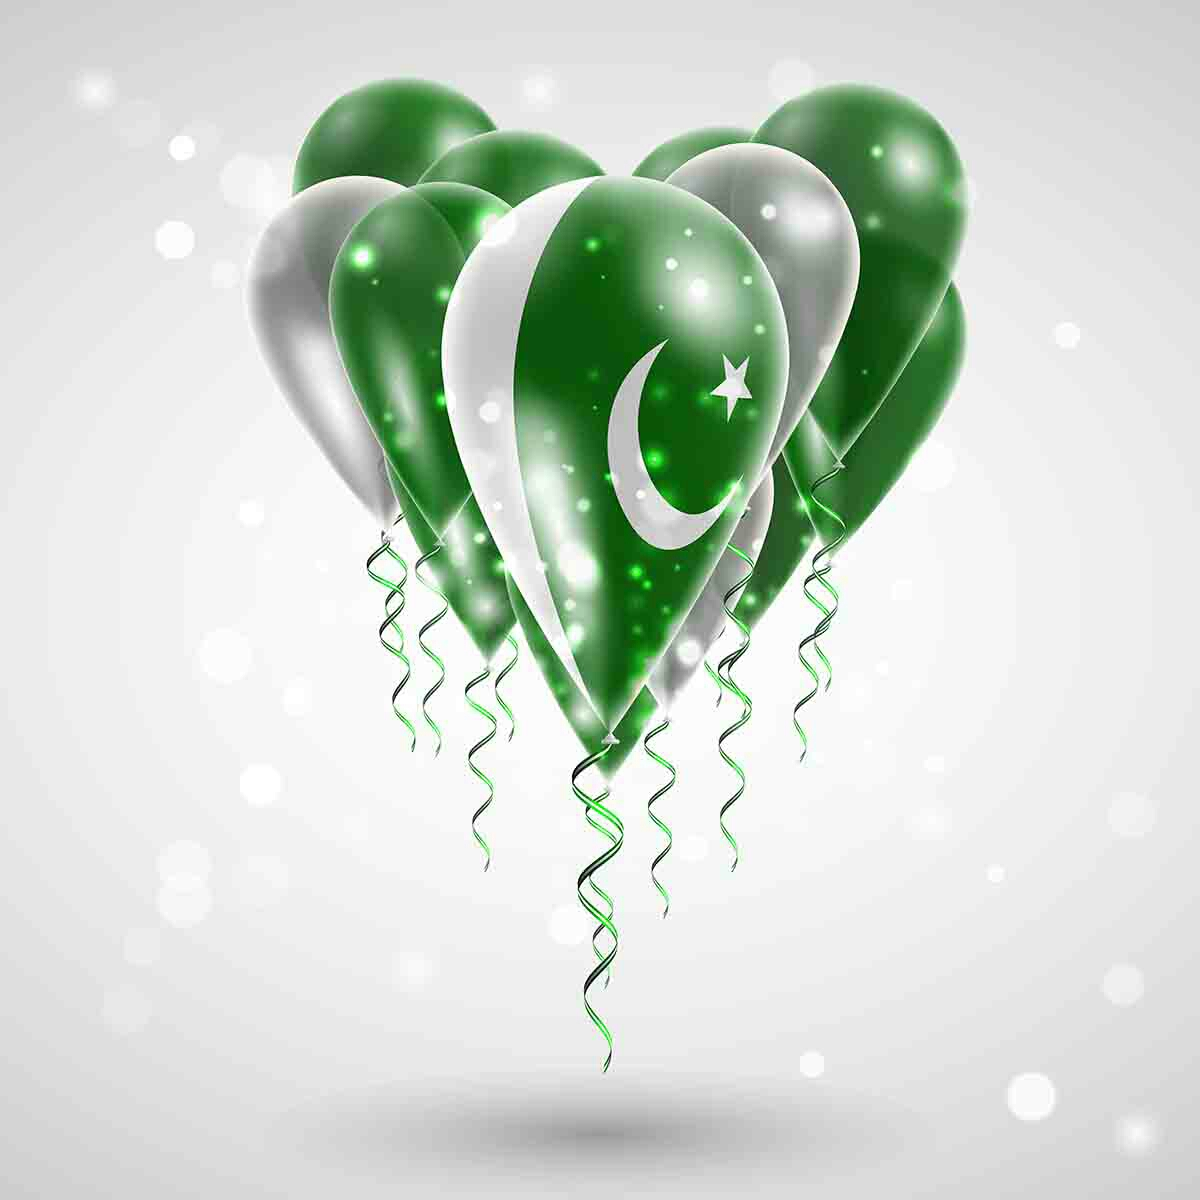 beautiful pakistan flag images pictures download